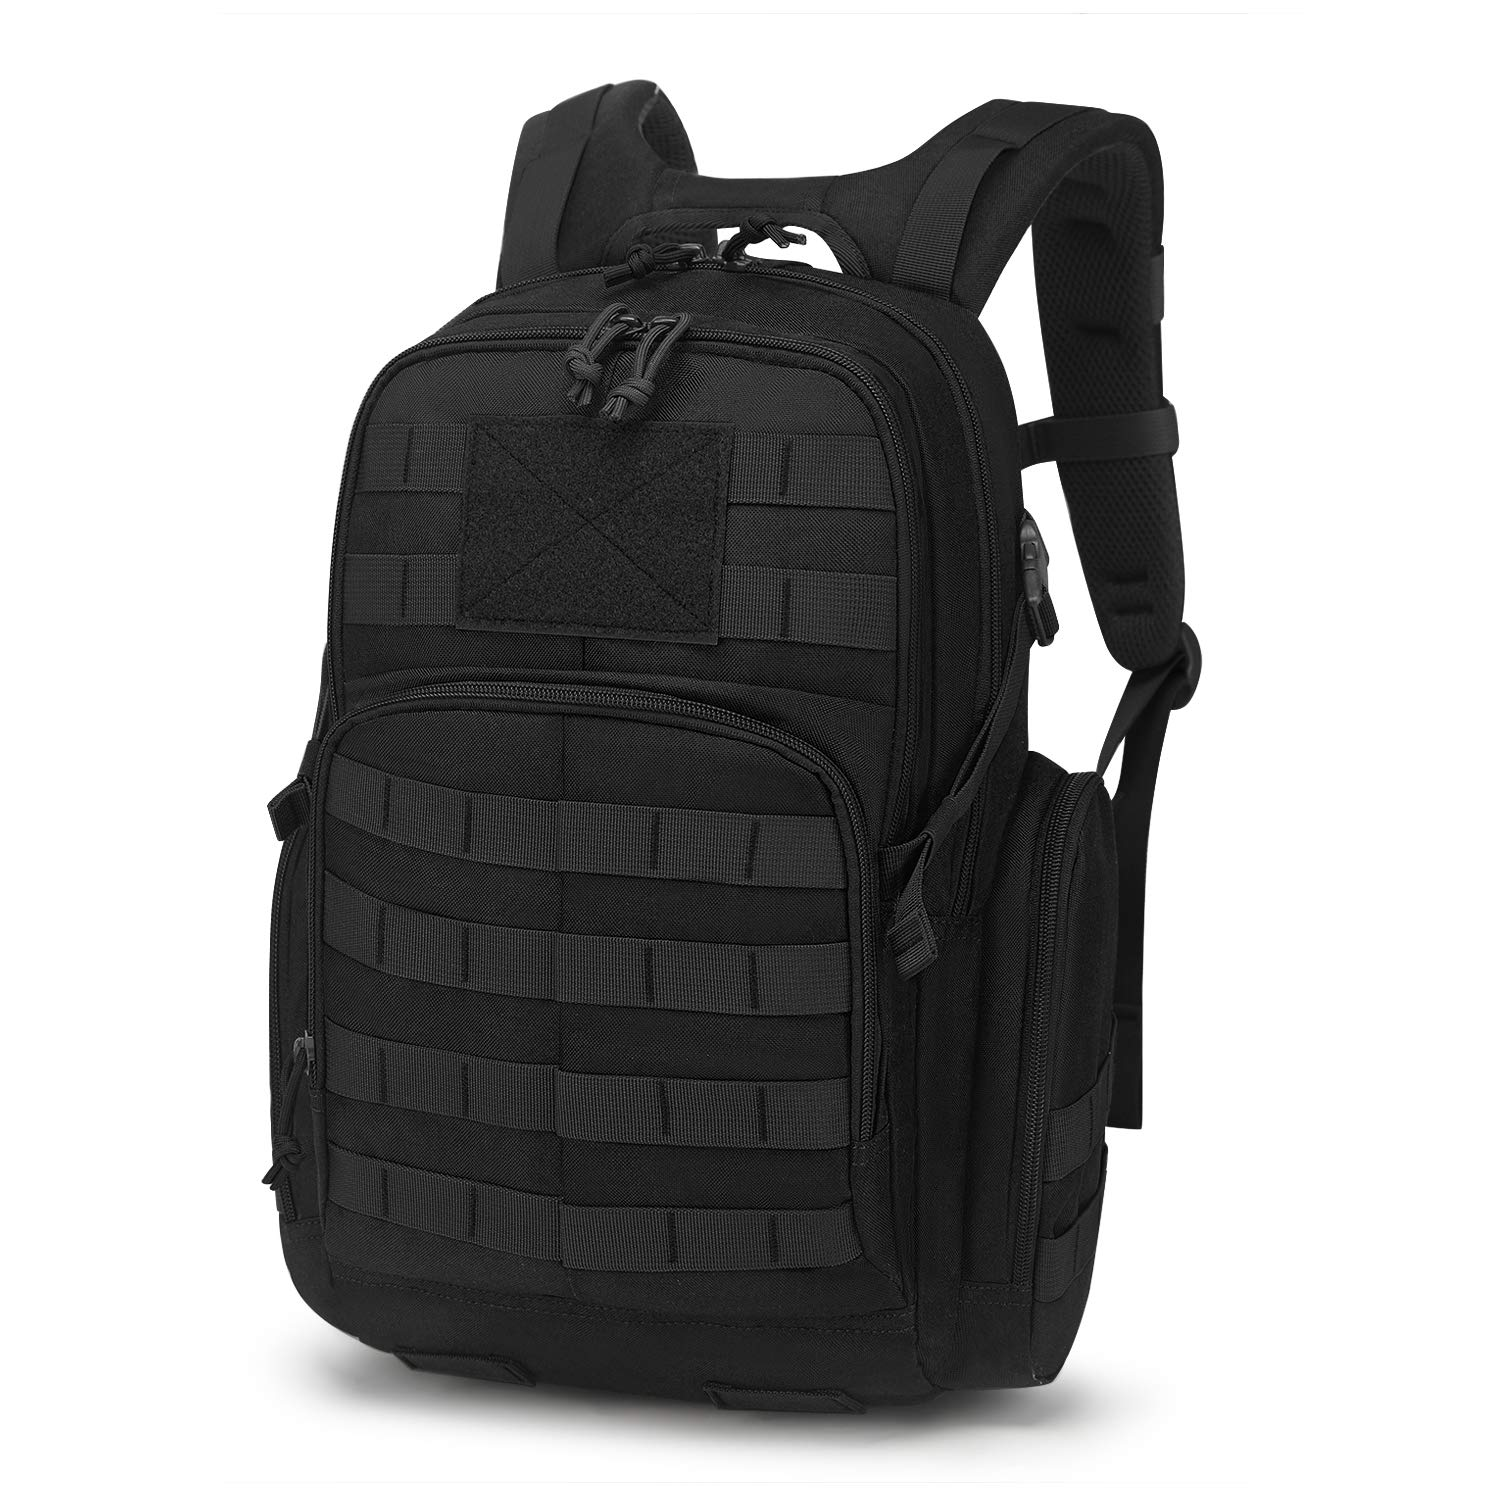 Mardingtop 25L Tactical Backpacks Molle Hiking daypacks for Camping Hiking Military Traveling (25L-Black, 25L)